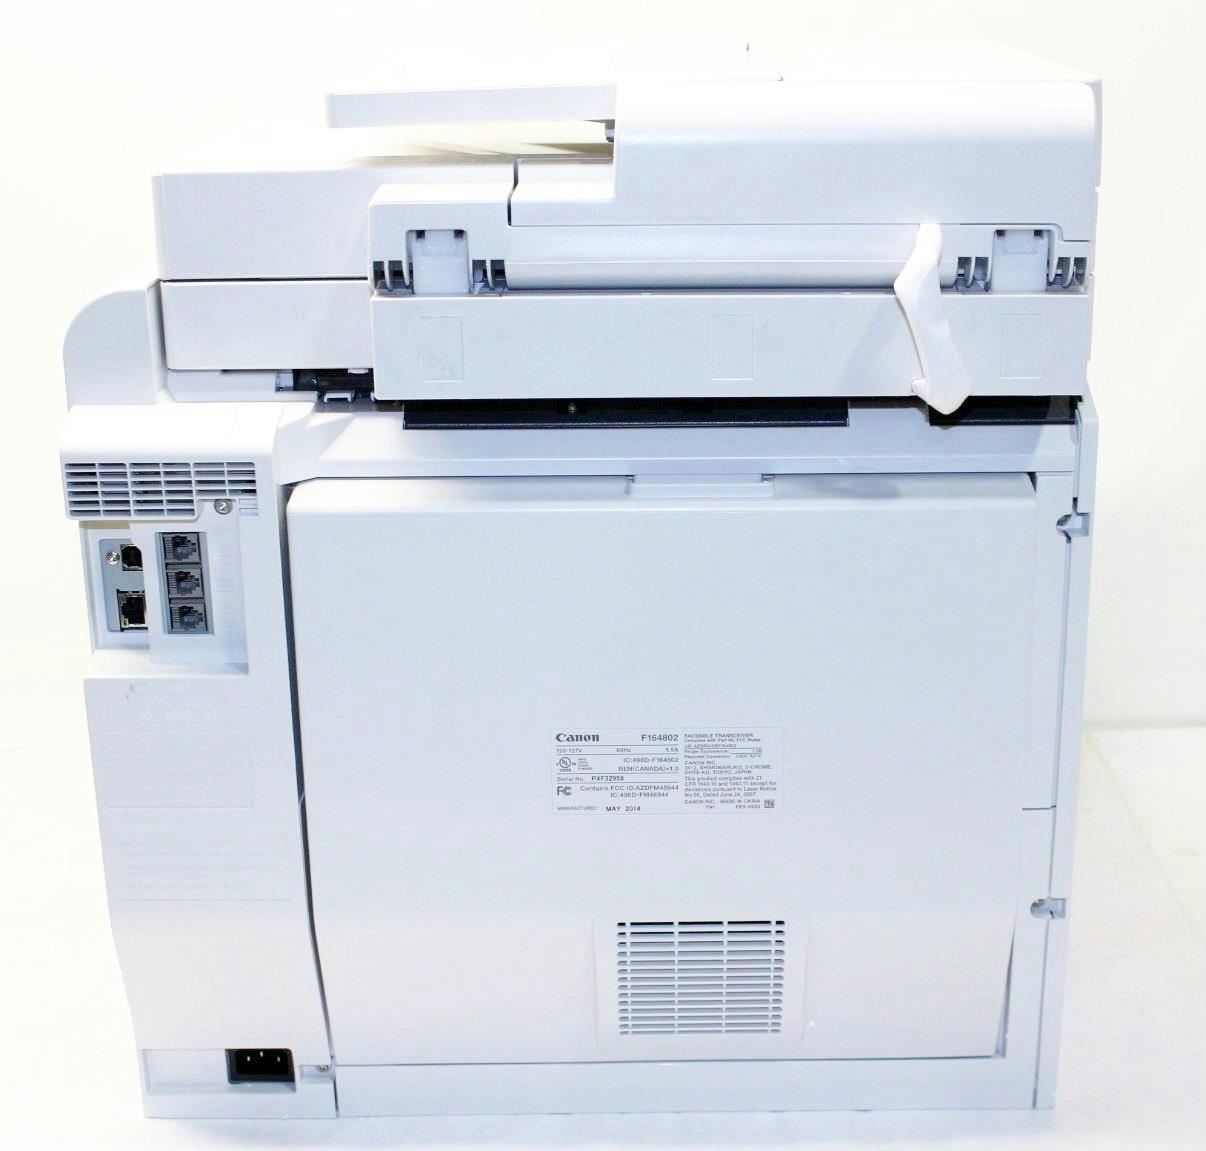 canon printer templates - canon mf8580cdw 21ppm color laser multifunction printer